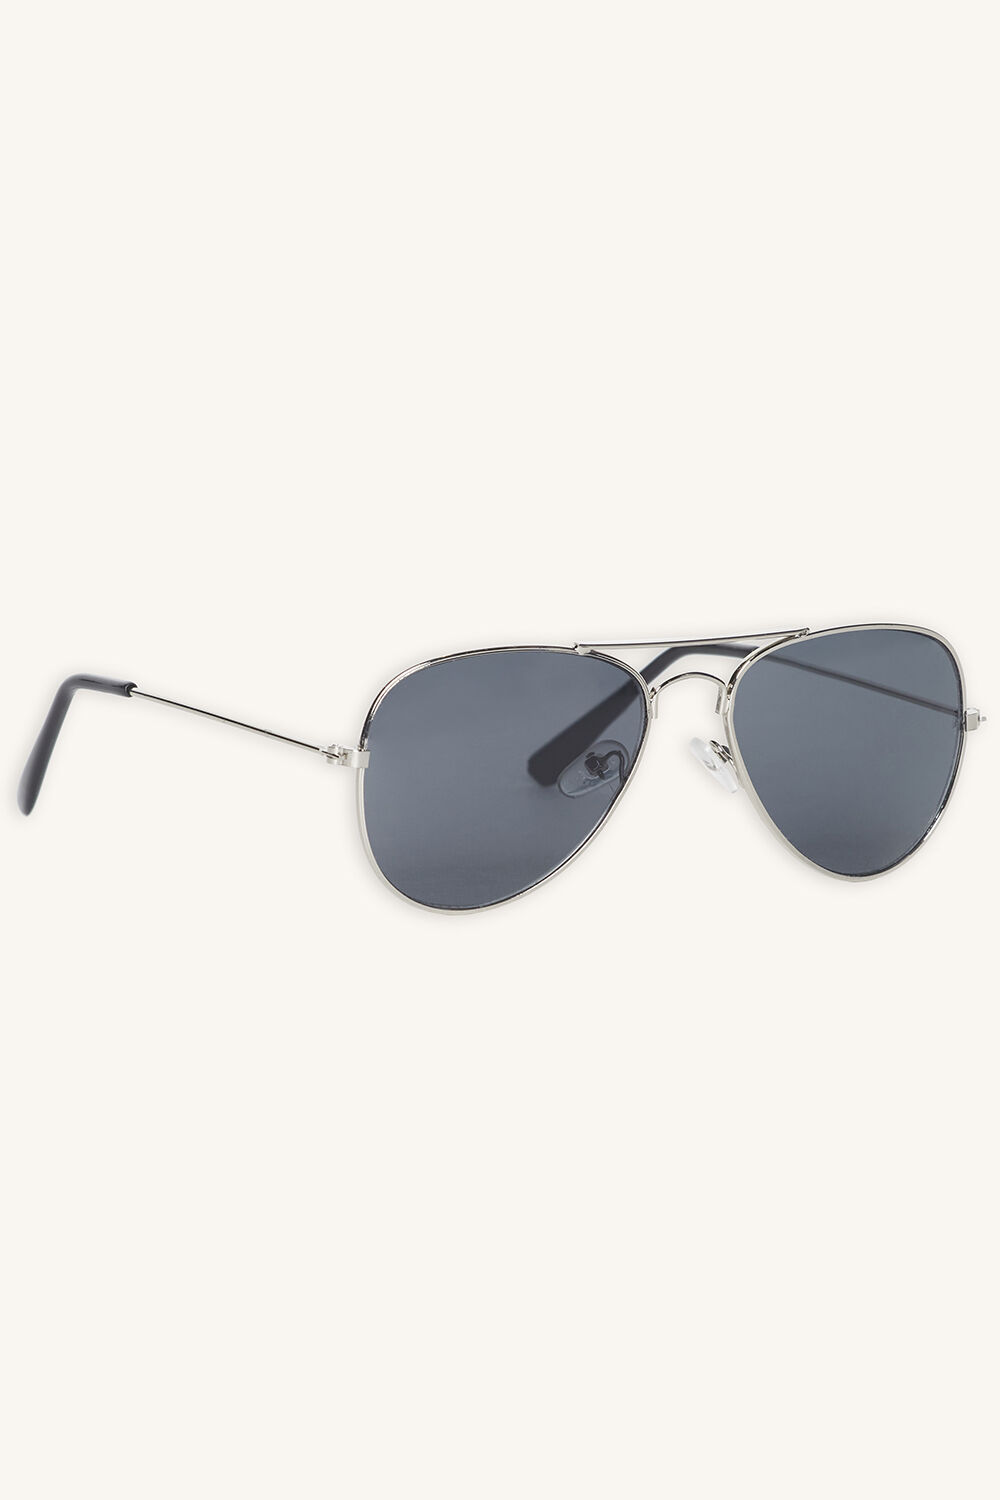 JOEY AVIATOR SUNGLASSES in colour METEORITE